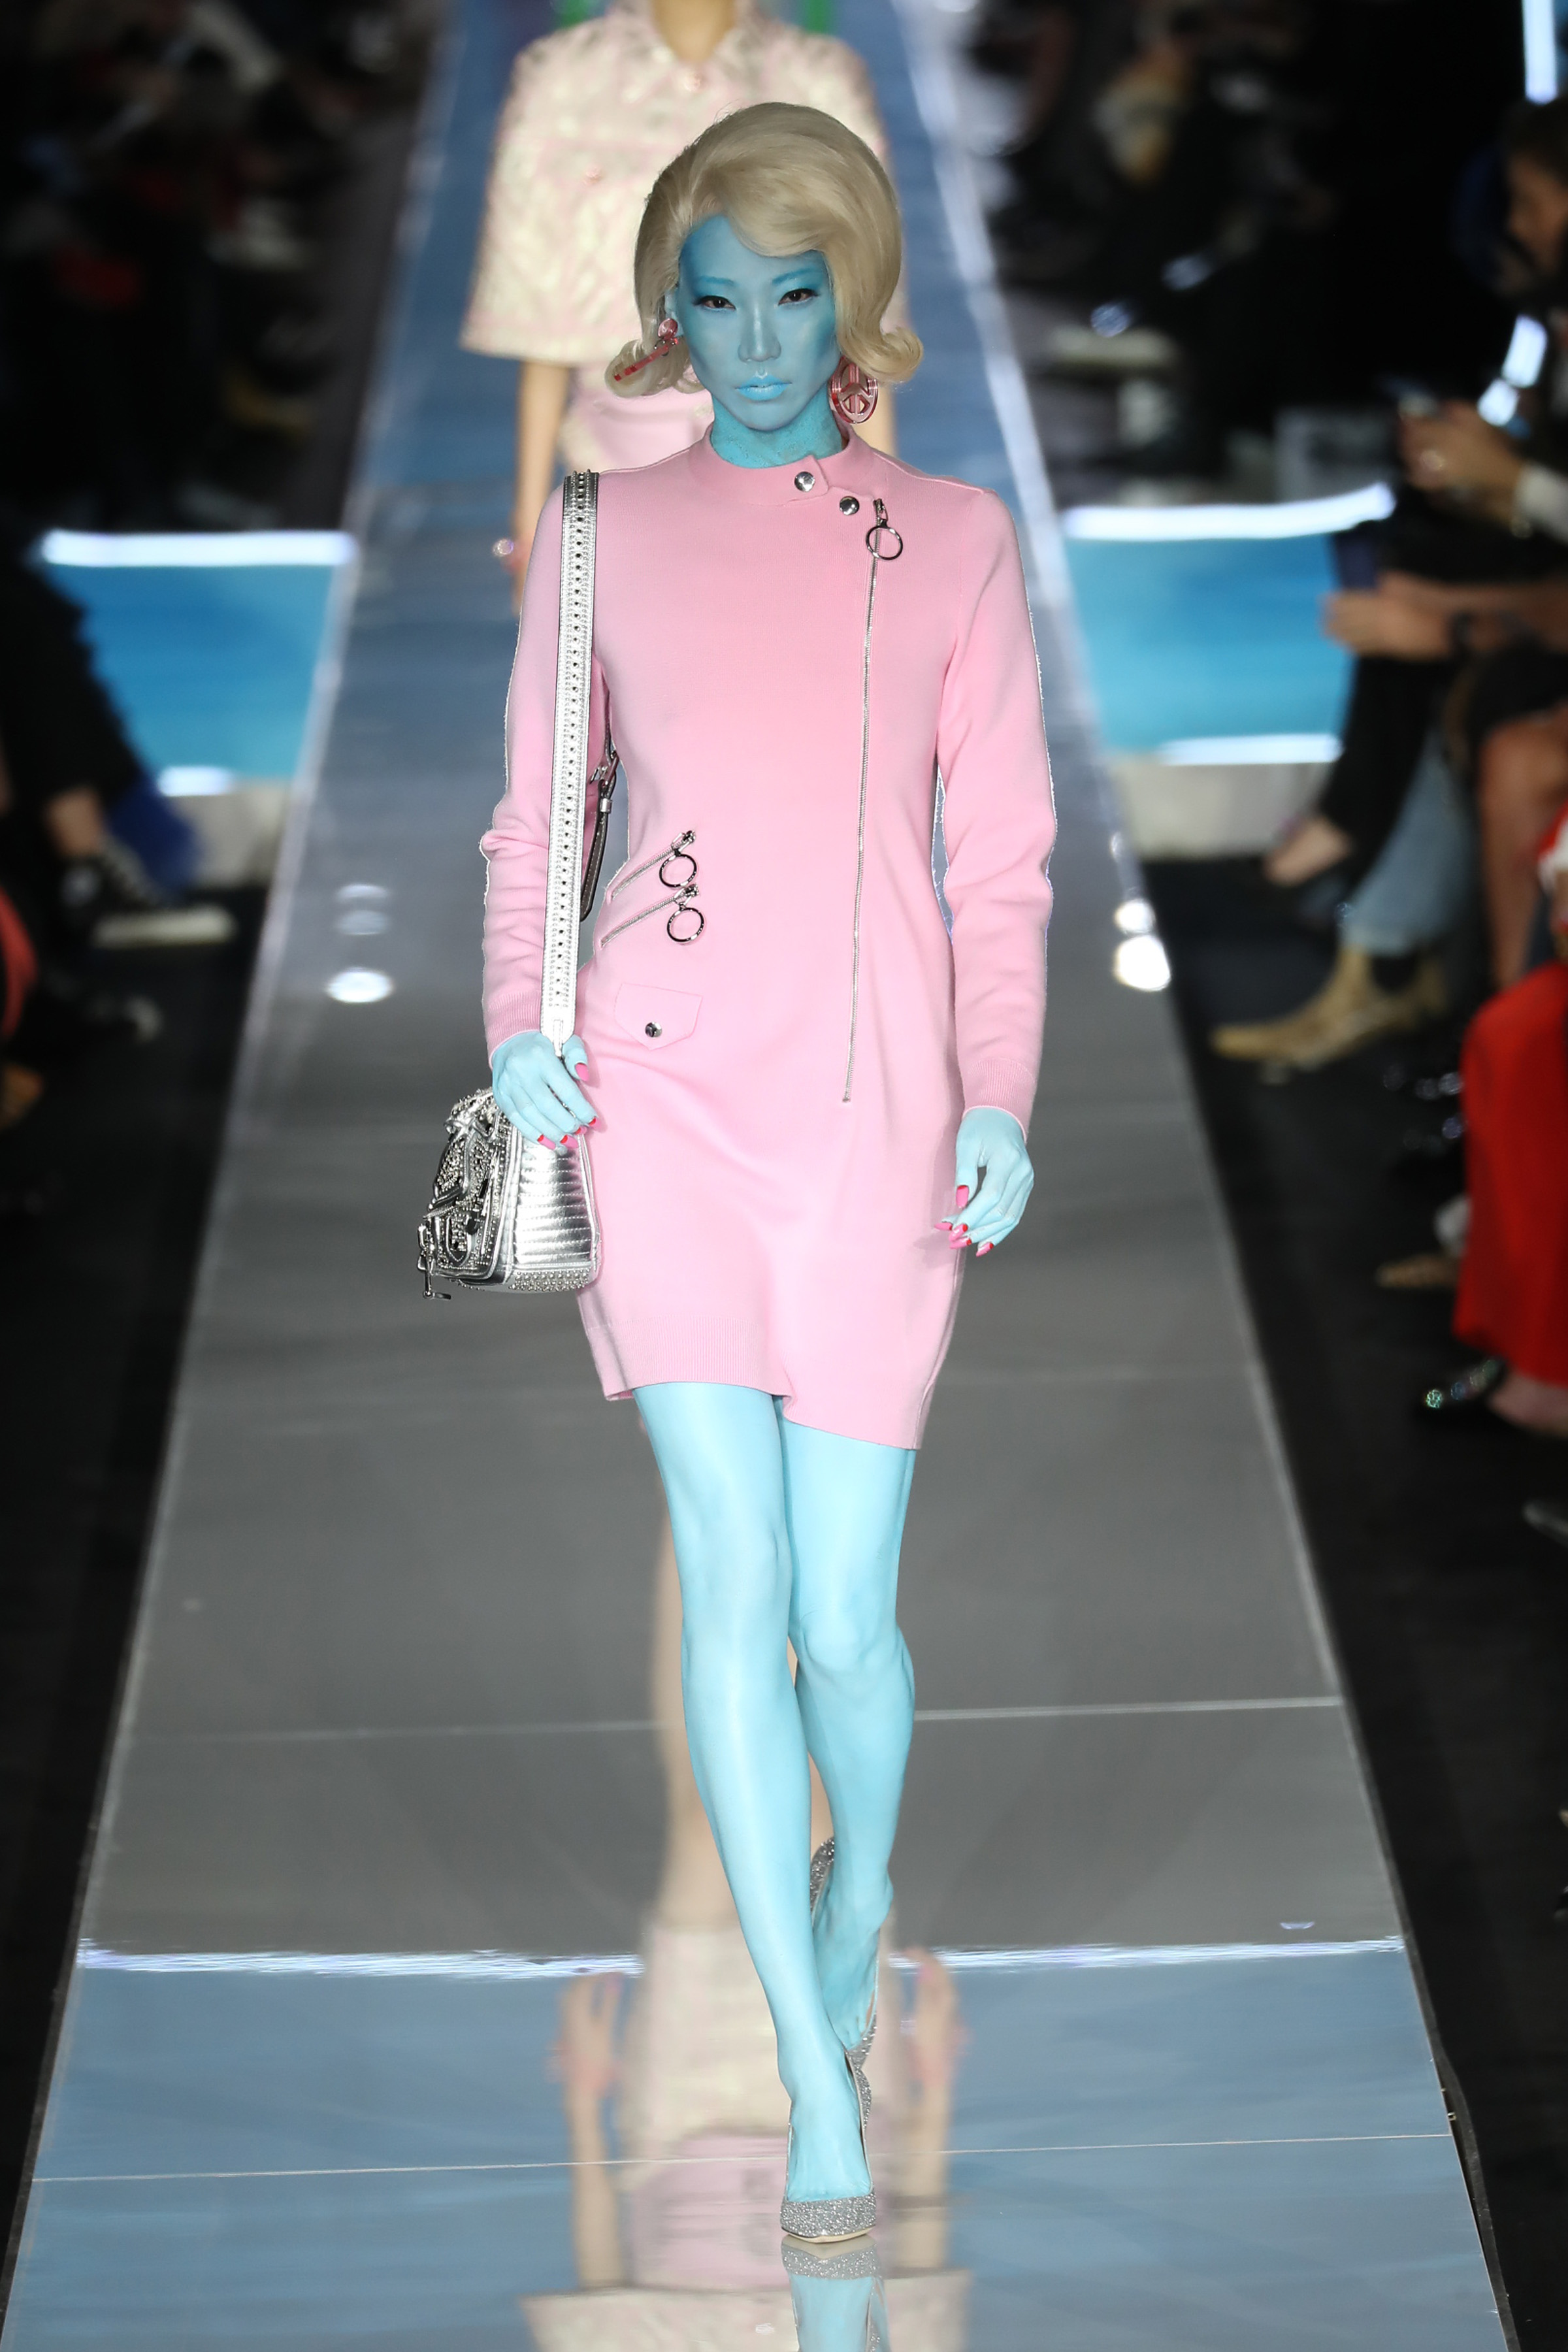 Milan/Italy - February 21 2018: A model walks the runway at the MOSCHINO show during Milan Fashion Week on February 21, 2018 in Milan, Italy. <P>  <B>Ref: SPL1662402  210218  </B><BR/> Picture by: Antonio Barros / Splash News<BR/> </P><P> <B>Splash News and Pictures</B><BR/> Los Angeles:310-821-2666<BR/> New York:212-619-2666<BR/> London:870-934-2666<BR/> <span id=